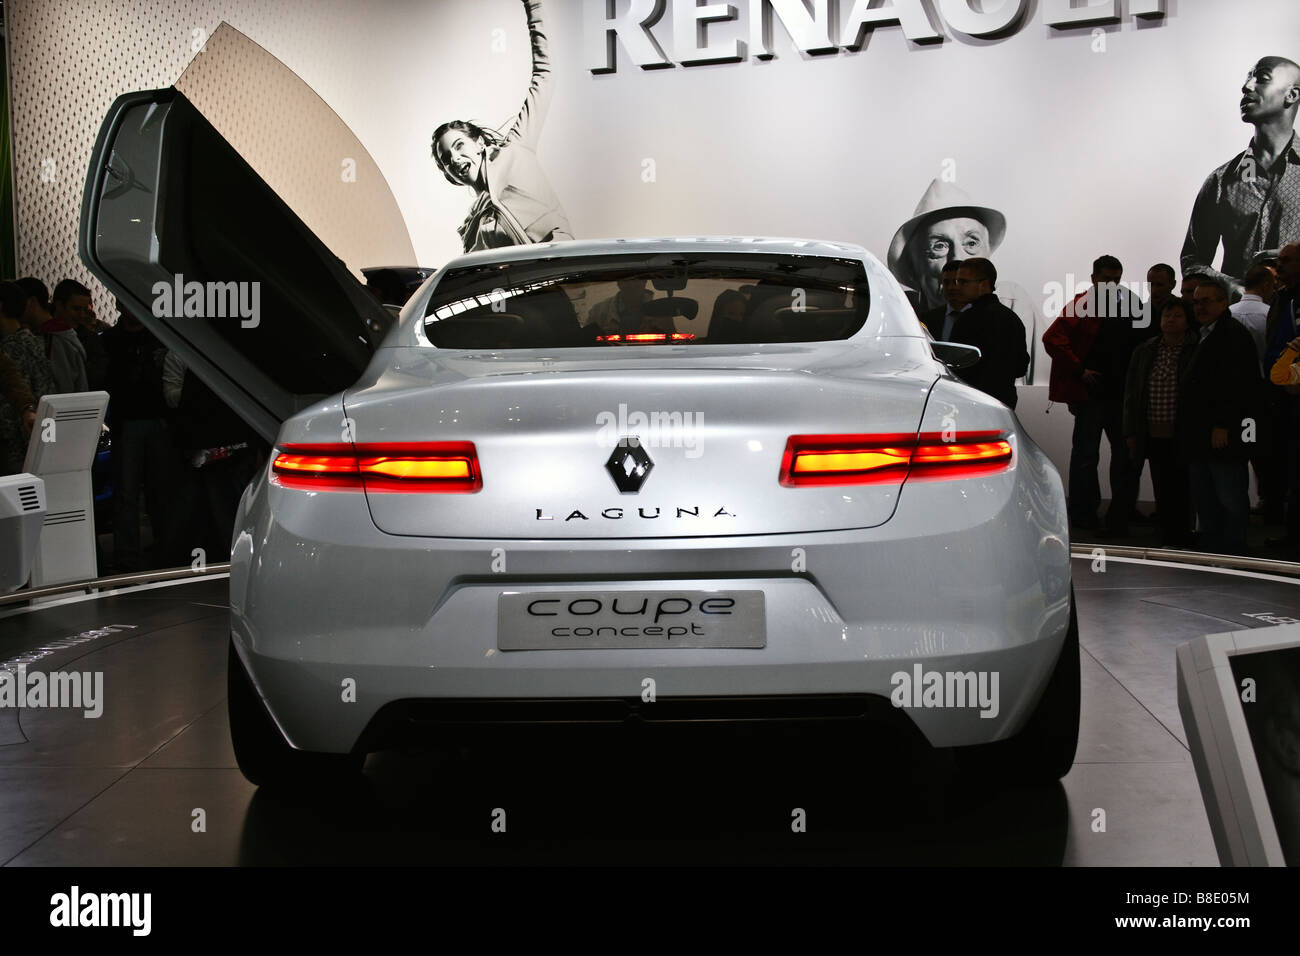 Renault Laguna Coupe At Zagreb Auto Show In Croatia From